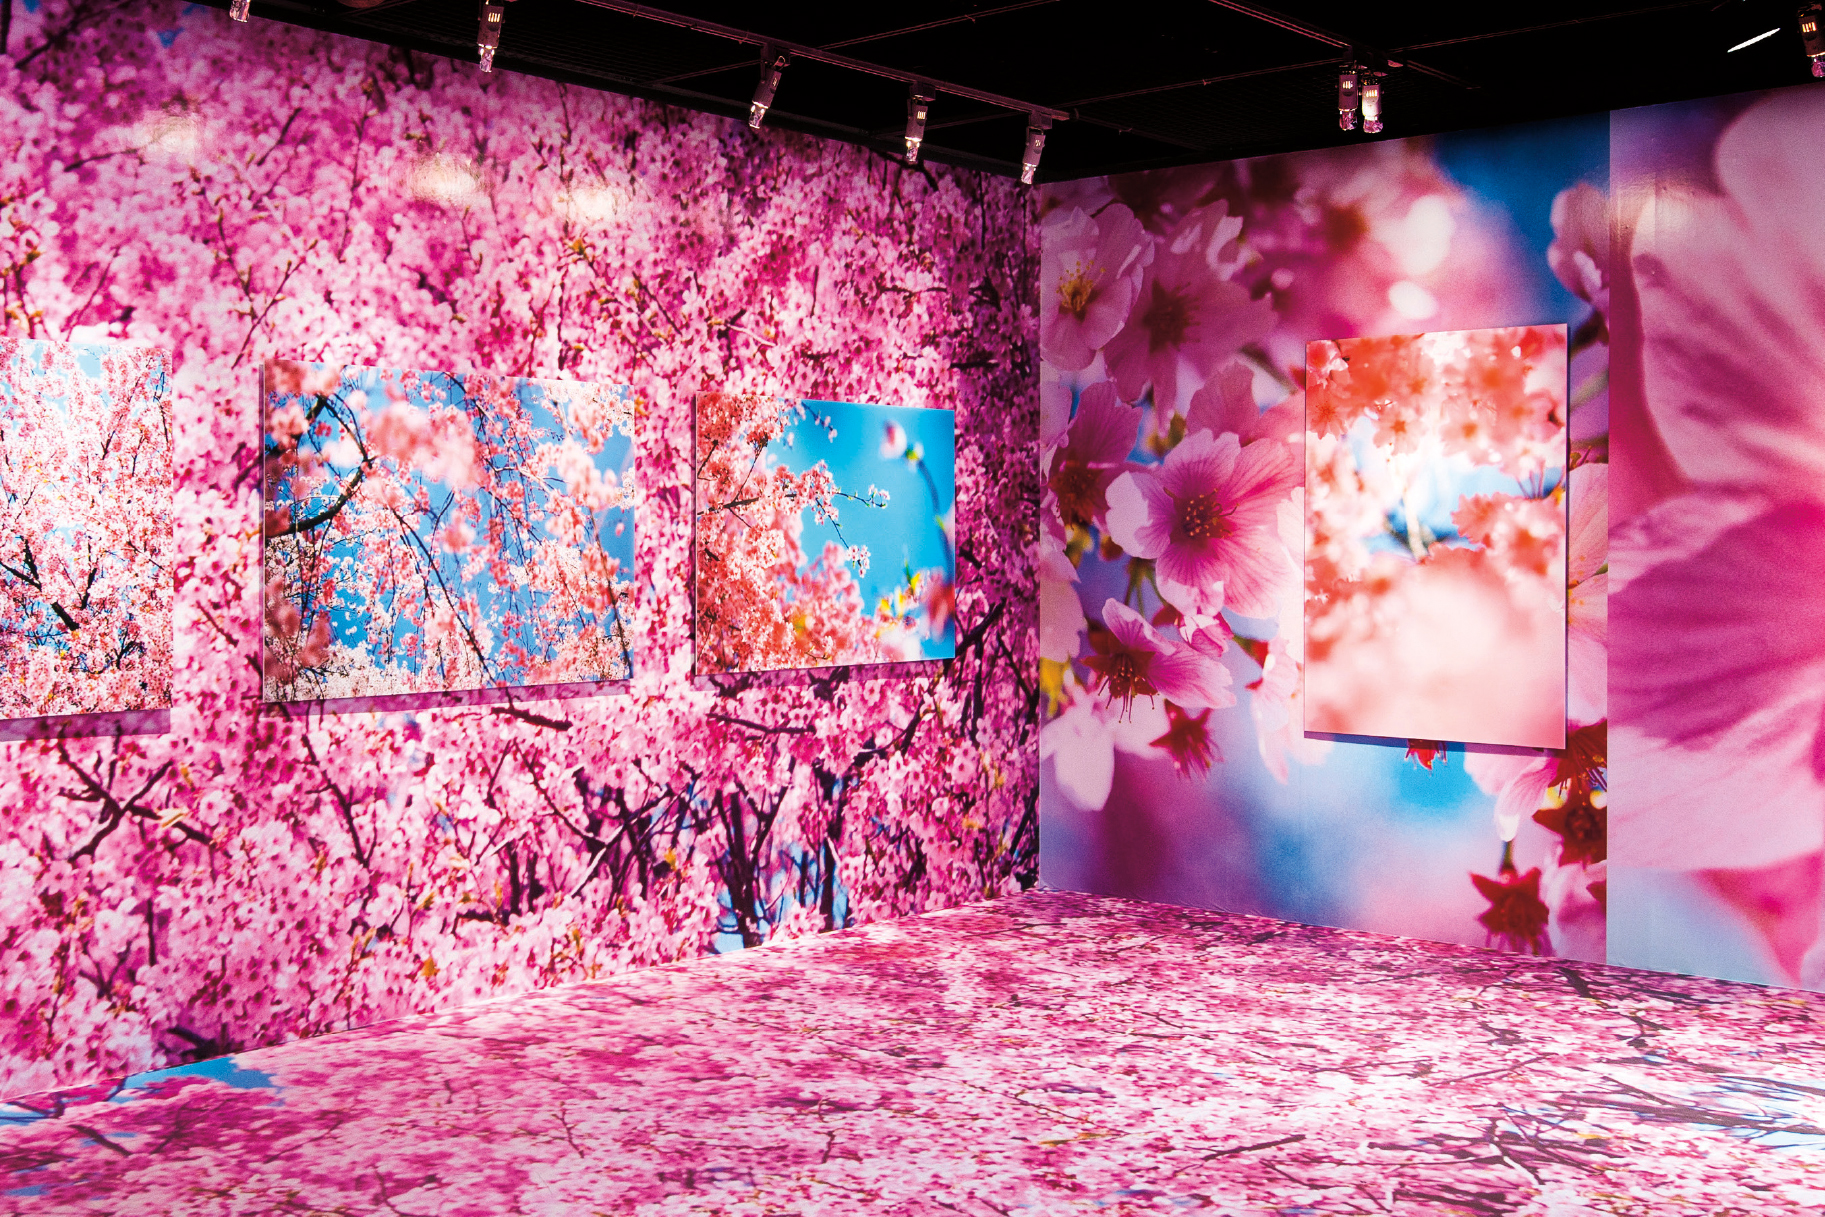 The vitality of fresh flowers explodes in Mika Ninagawa esibition in Taipei, 2016.